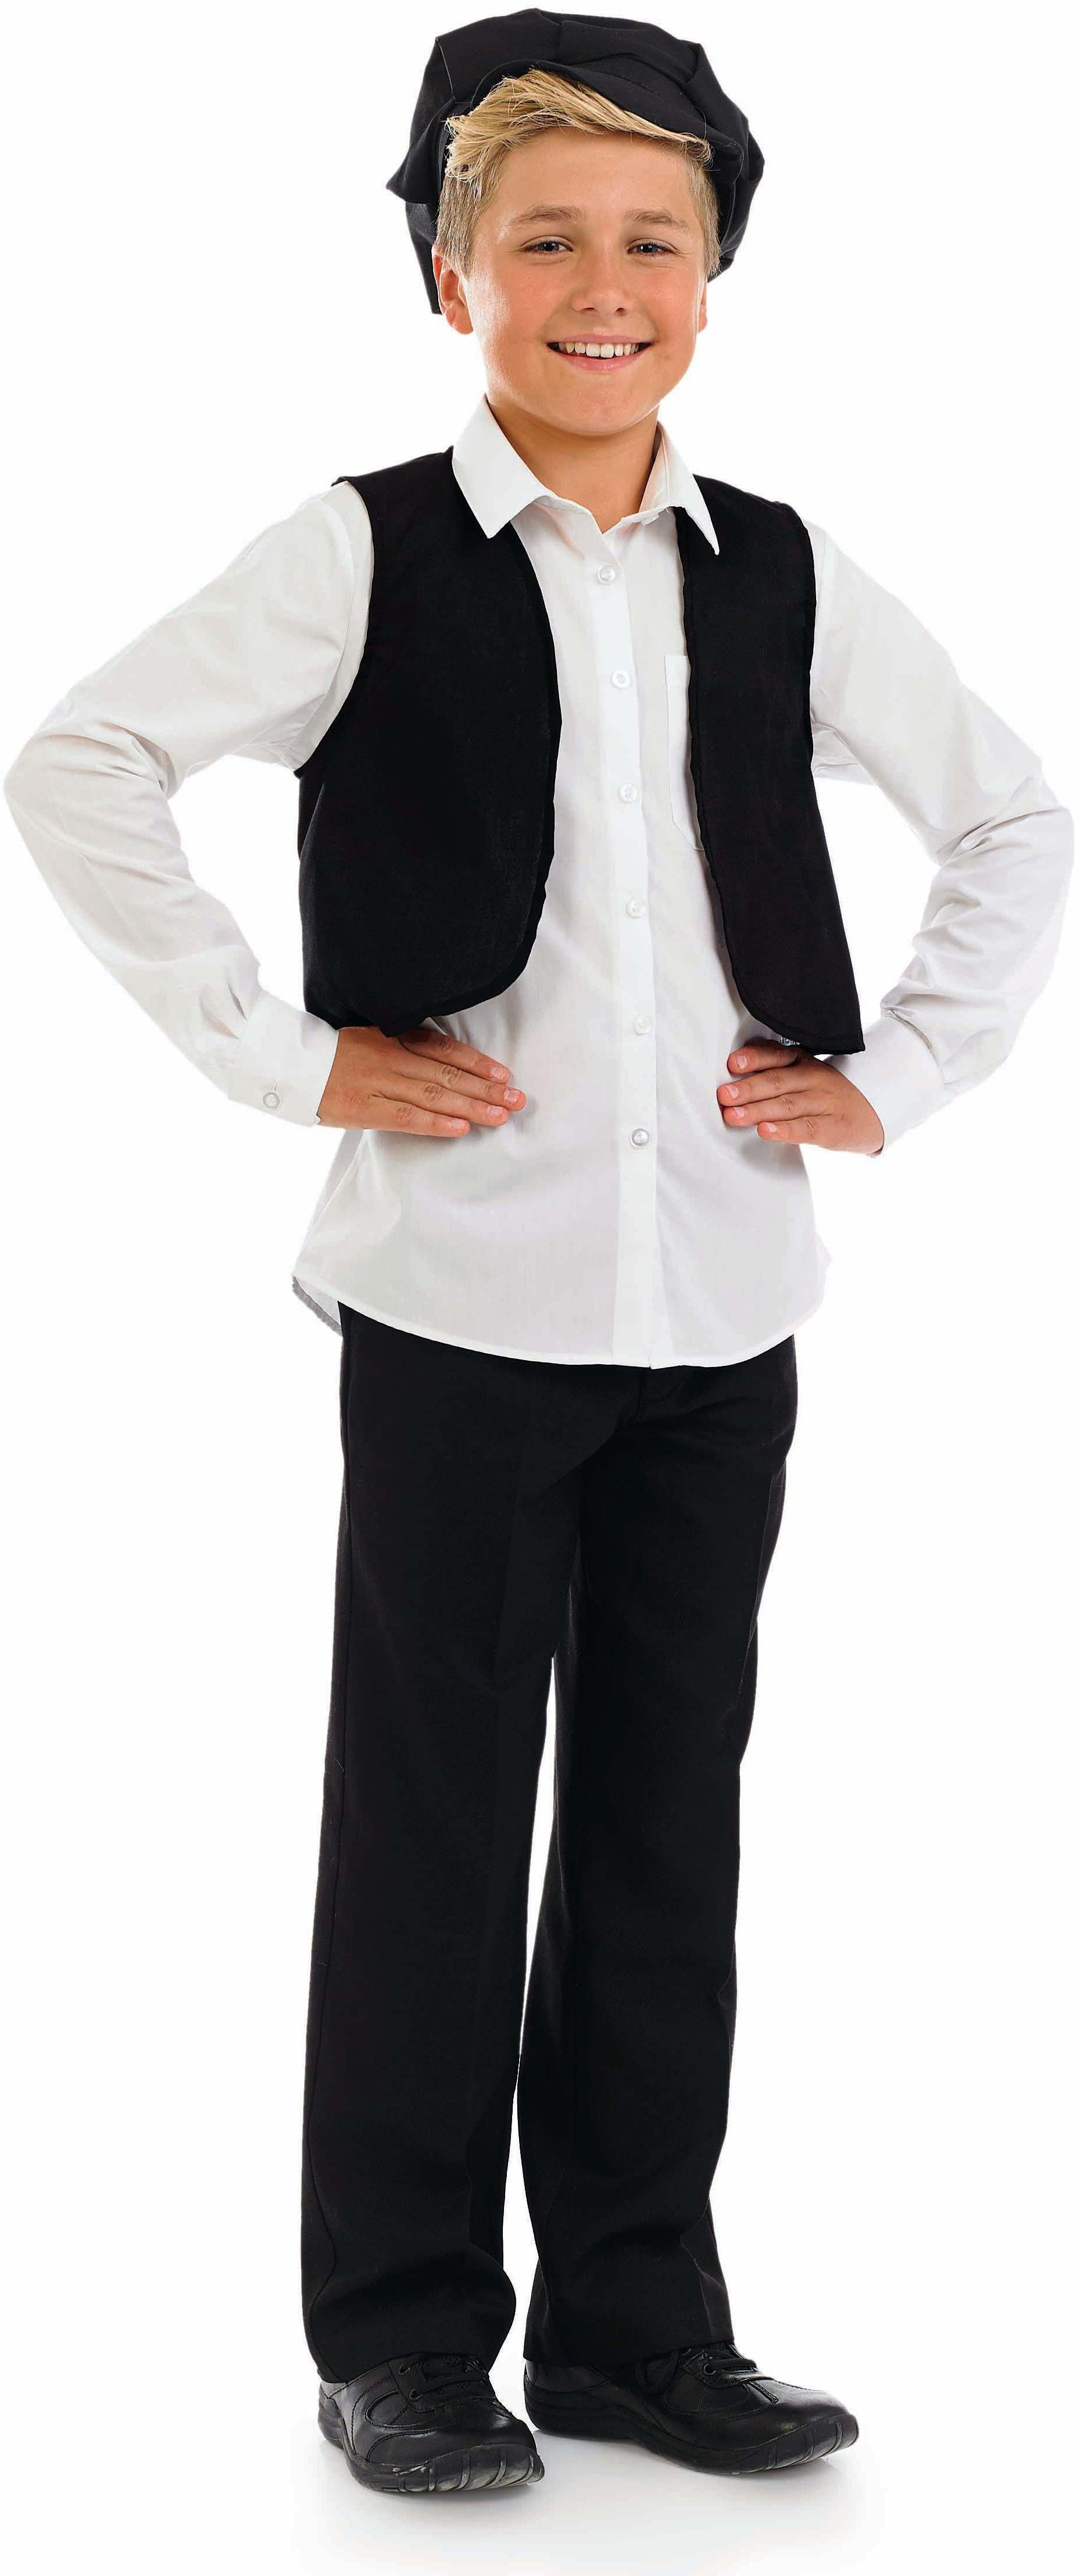 Boys Victorian Cap & Waistcoat Victorian Outfit - (Black)